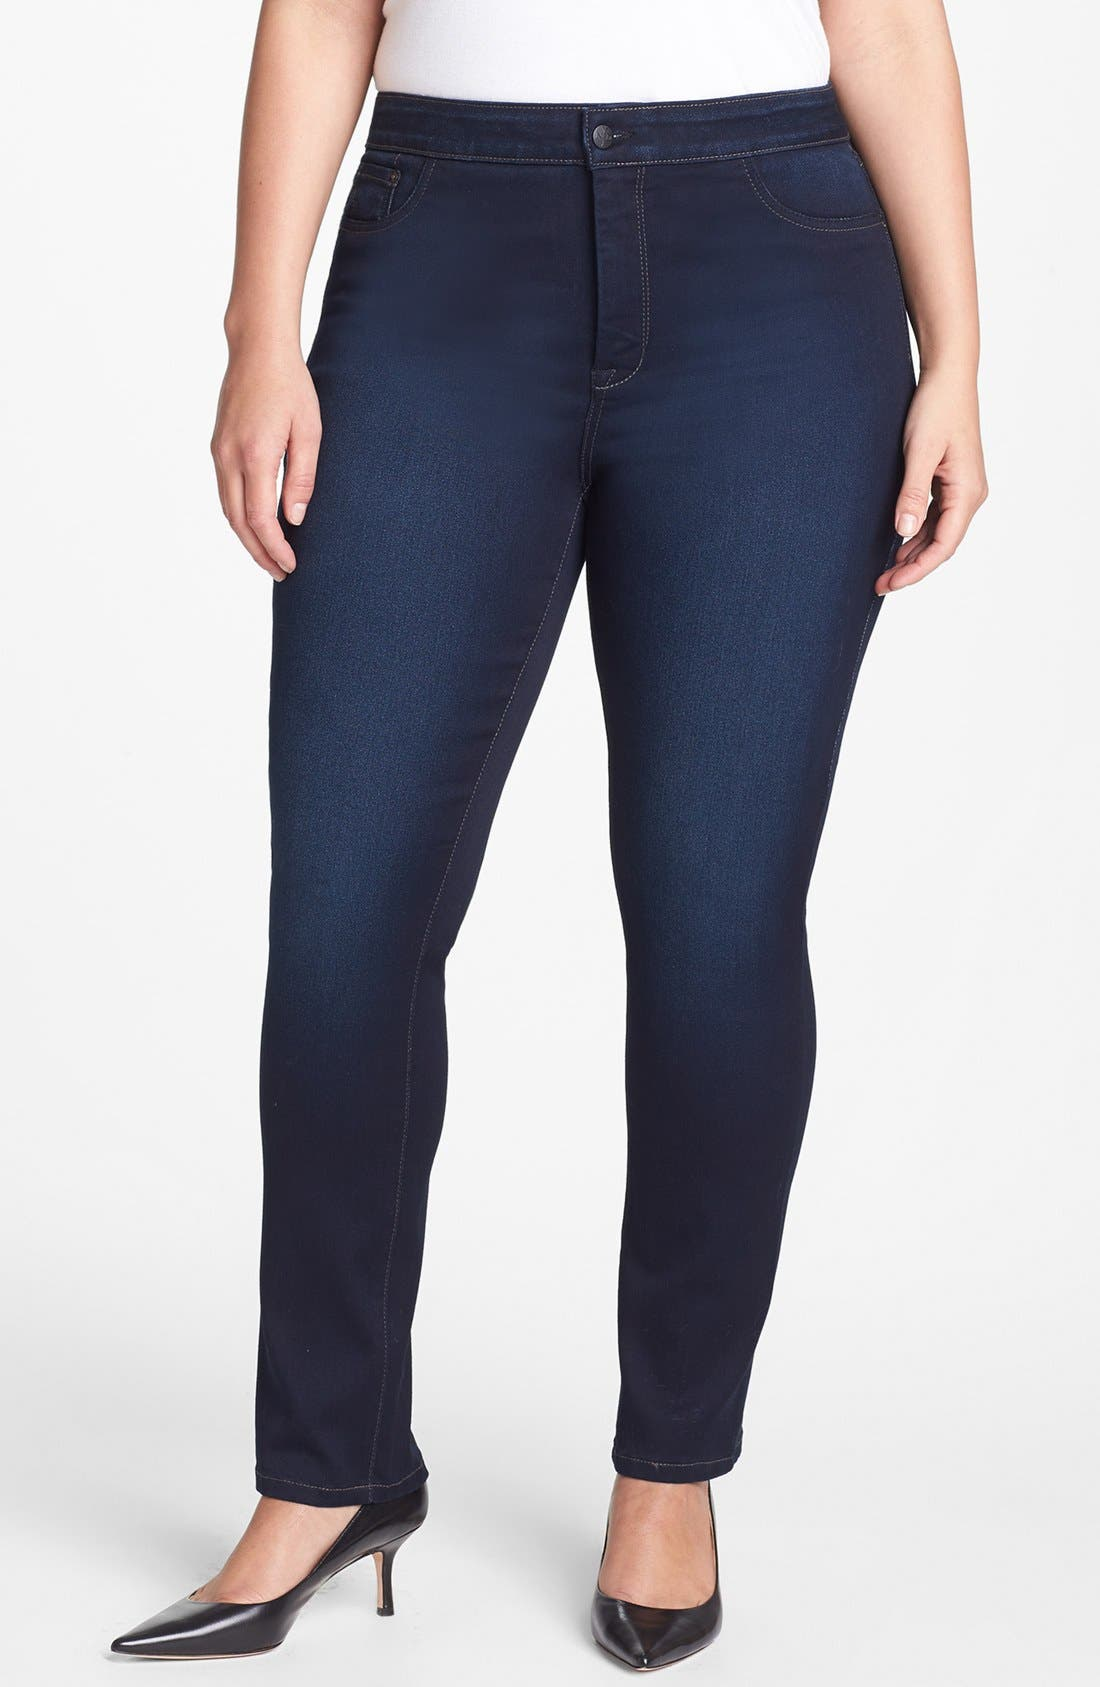 Alternate Image 1 Selected - NYDJ 'Jaclyn' Stretch Skinny Jeans (Pasadena) (Plus Size)